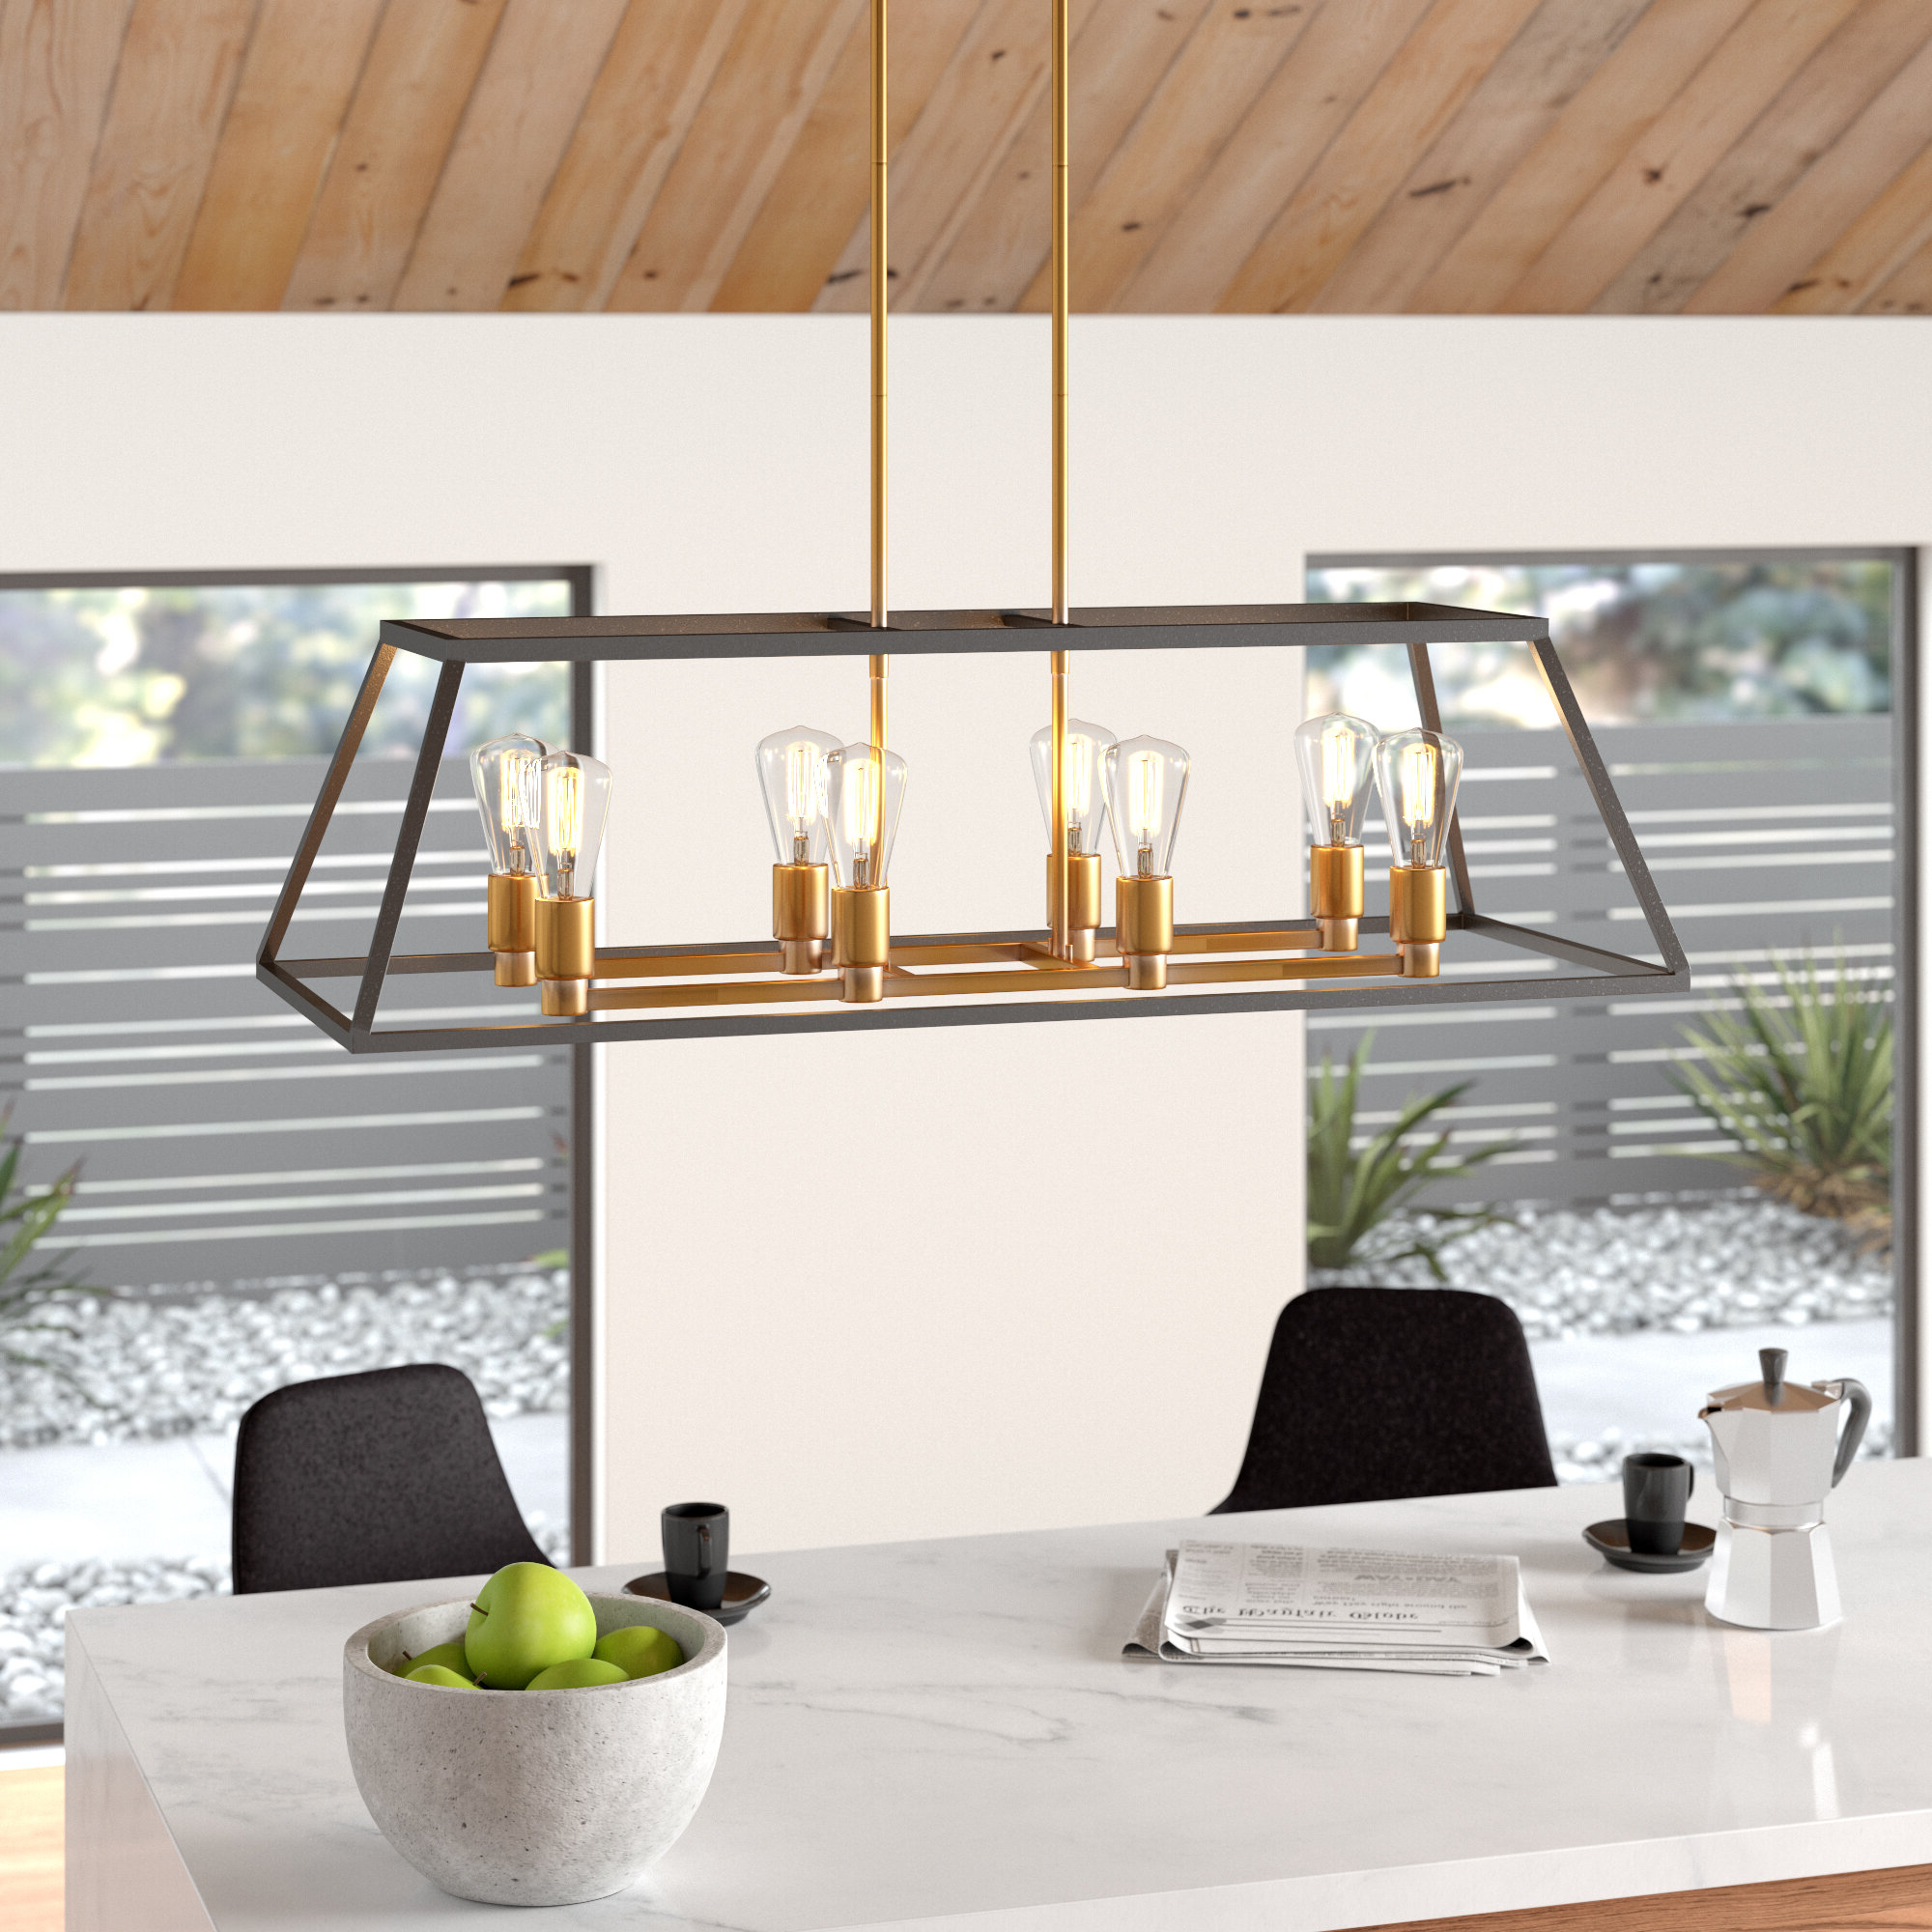 Preferred Shisler 8 Light Kitchen Island Linear Pendant For Delon 5 Light Kitchen Island Linear Pendants (View 18 of 20)